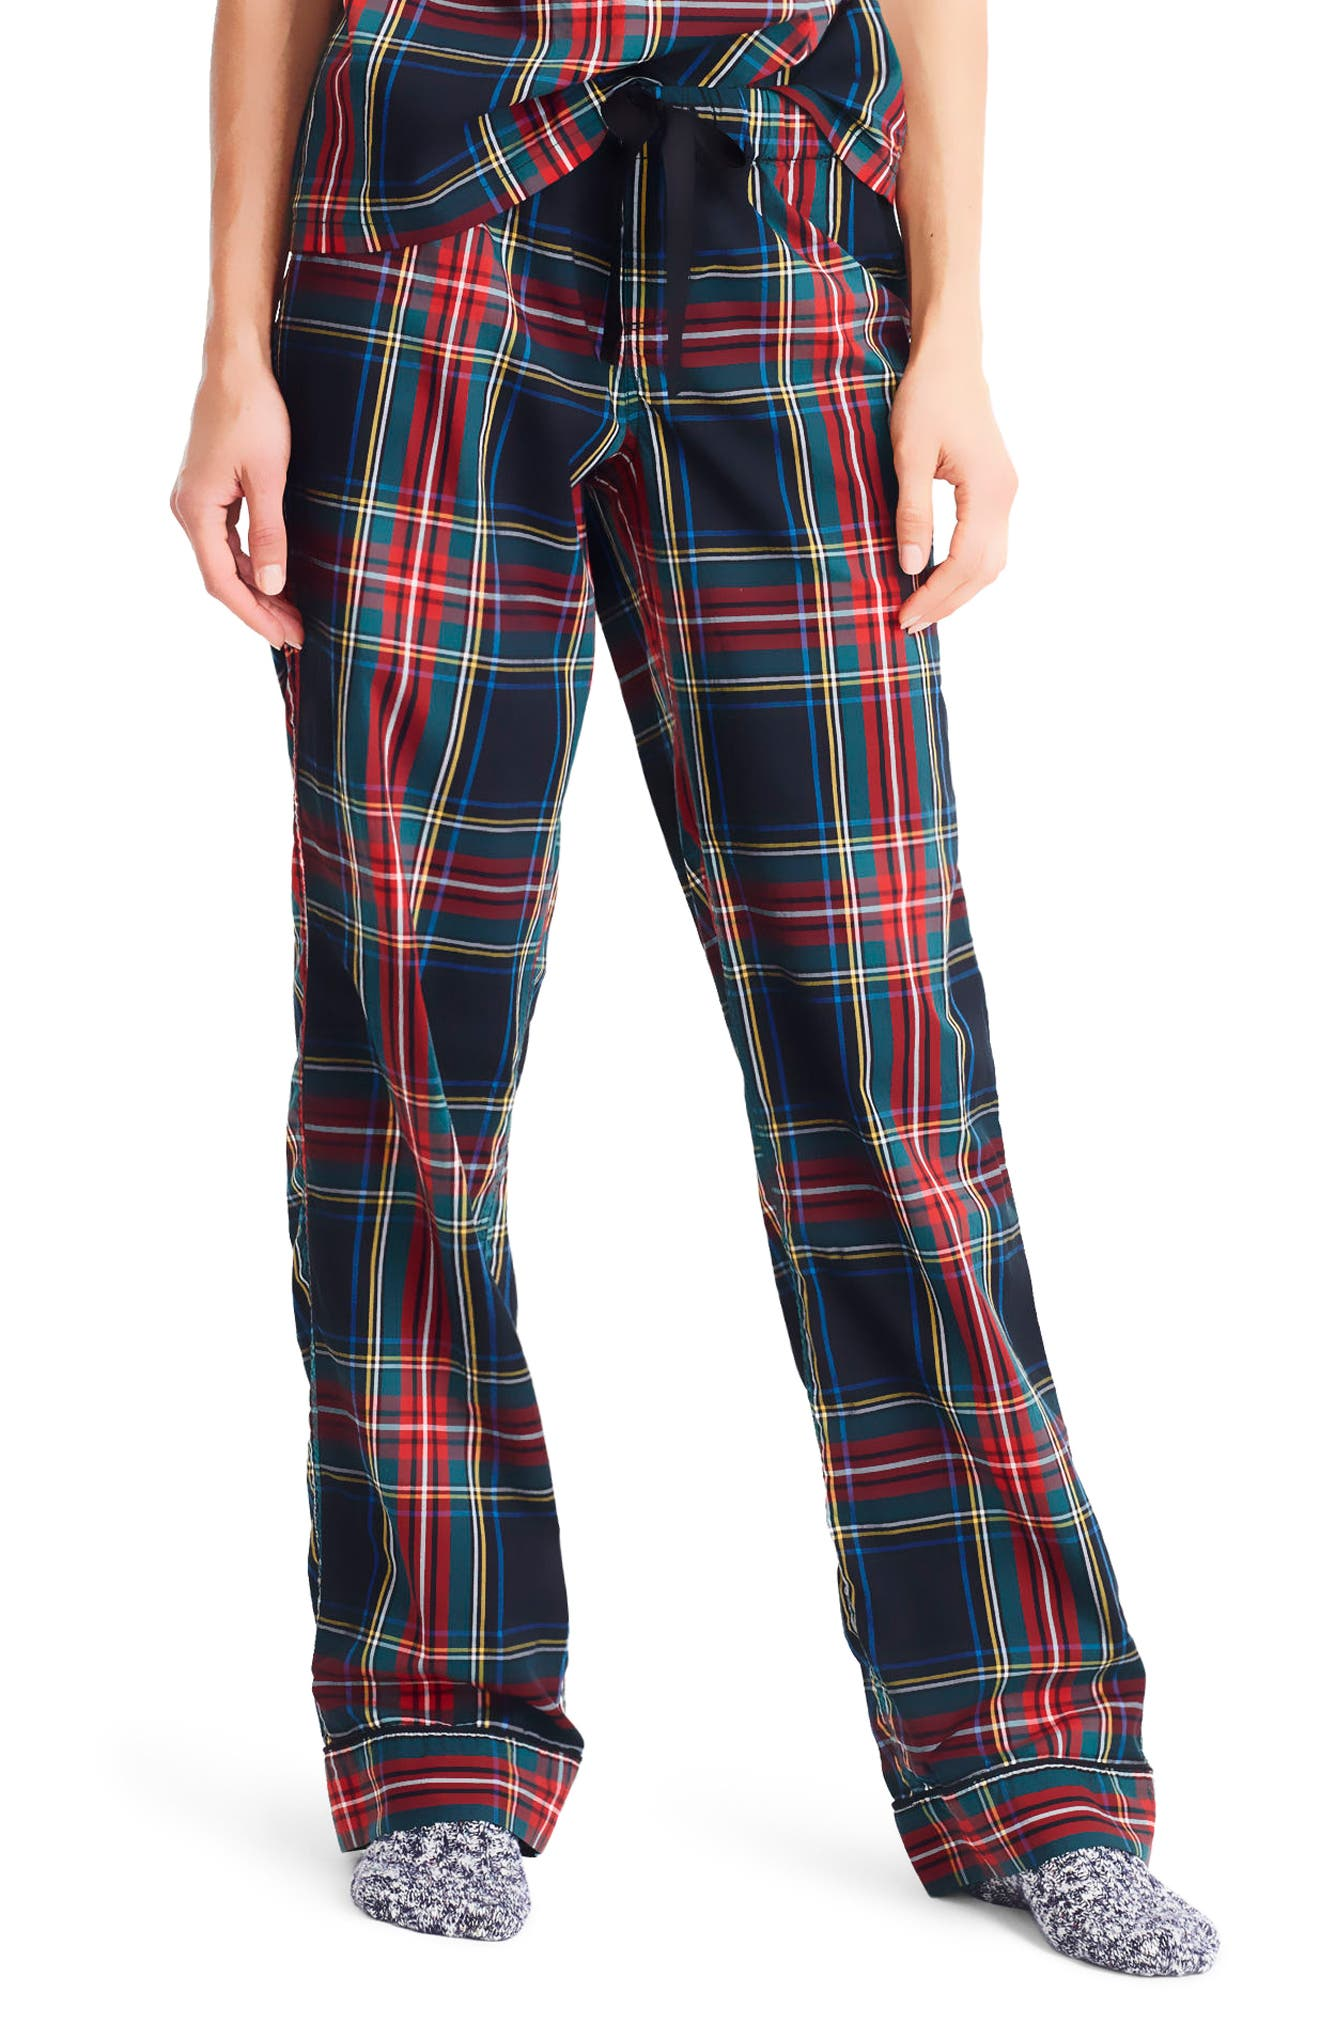 J.Crew Blackwatch Stuart Tartan Pajama Pants